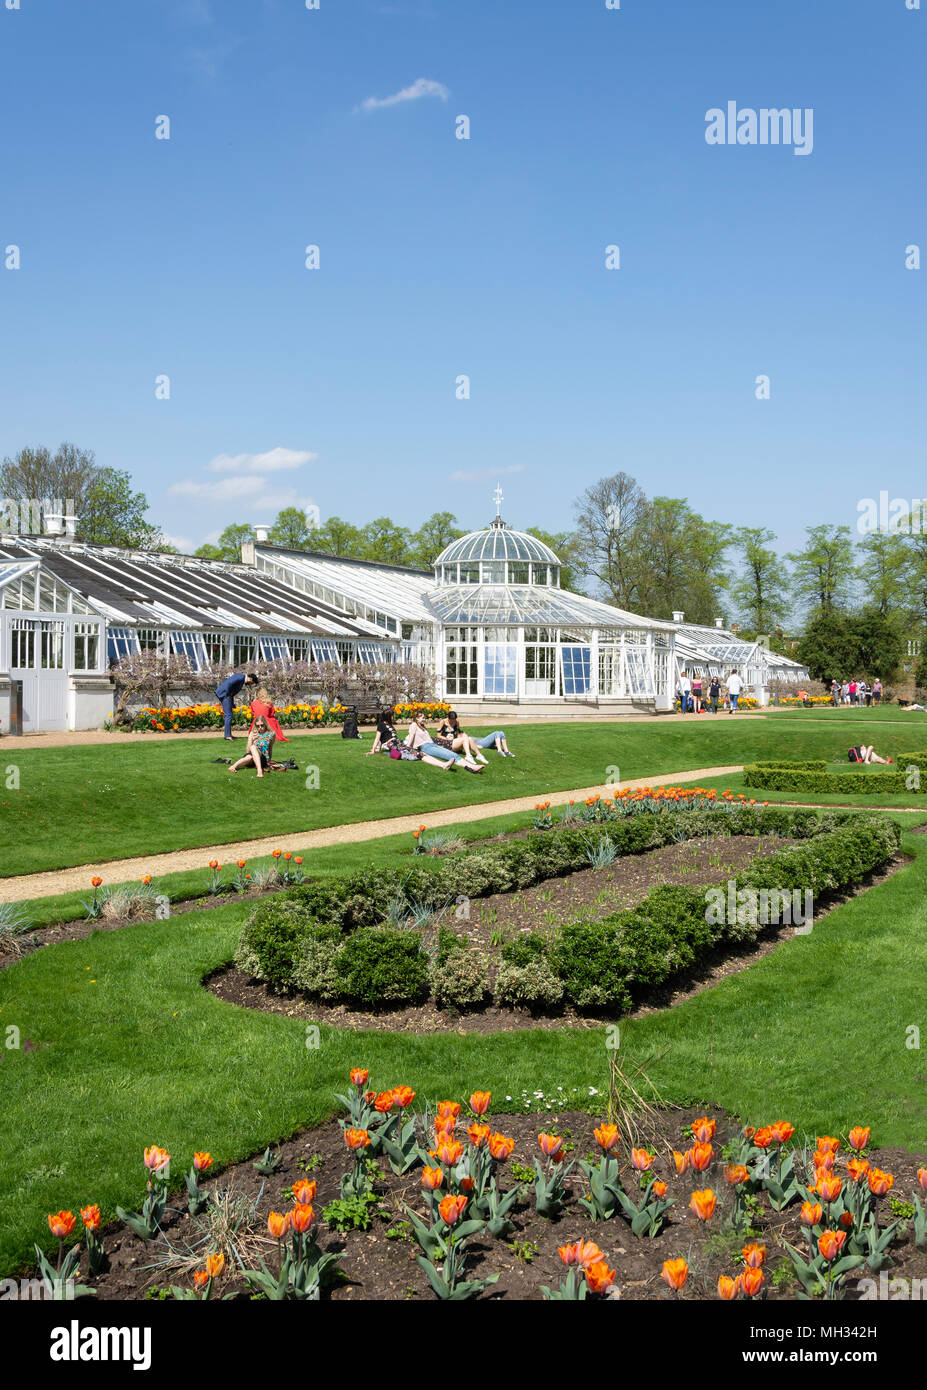 The Conservatory ‌in Chiswick House gardens, Burlington Lane, Chiswick, London Borough of Hounslow, Greater London, England, United Kingdom - Stock Image